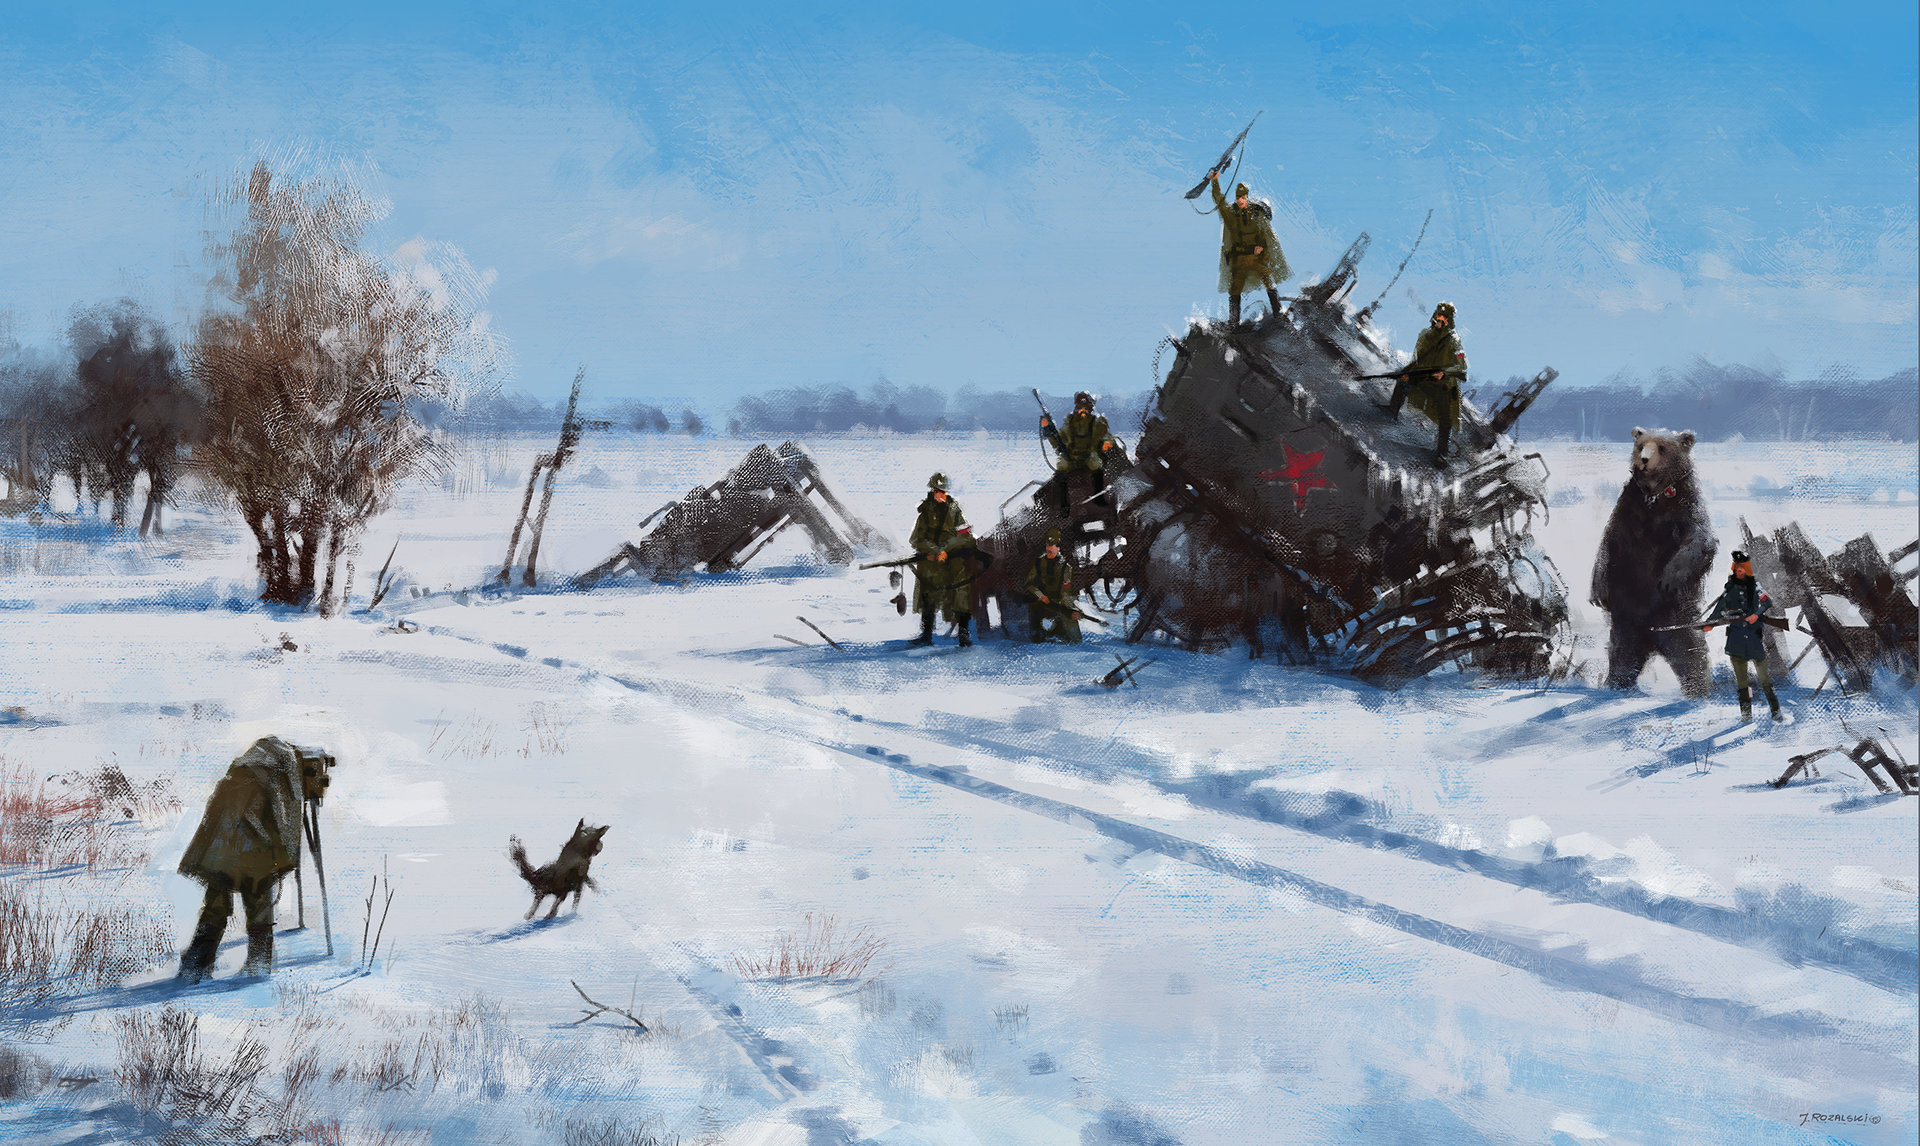 Jakub rozalski 1920 mech on the field 100na70small